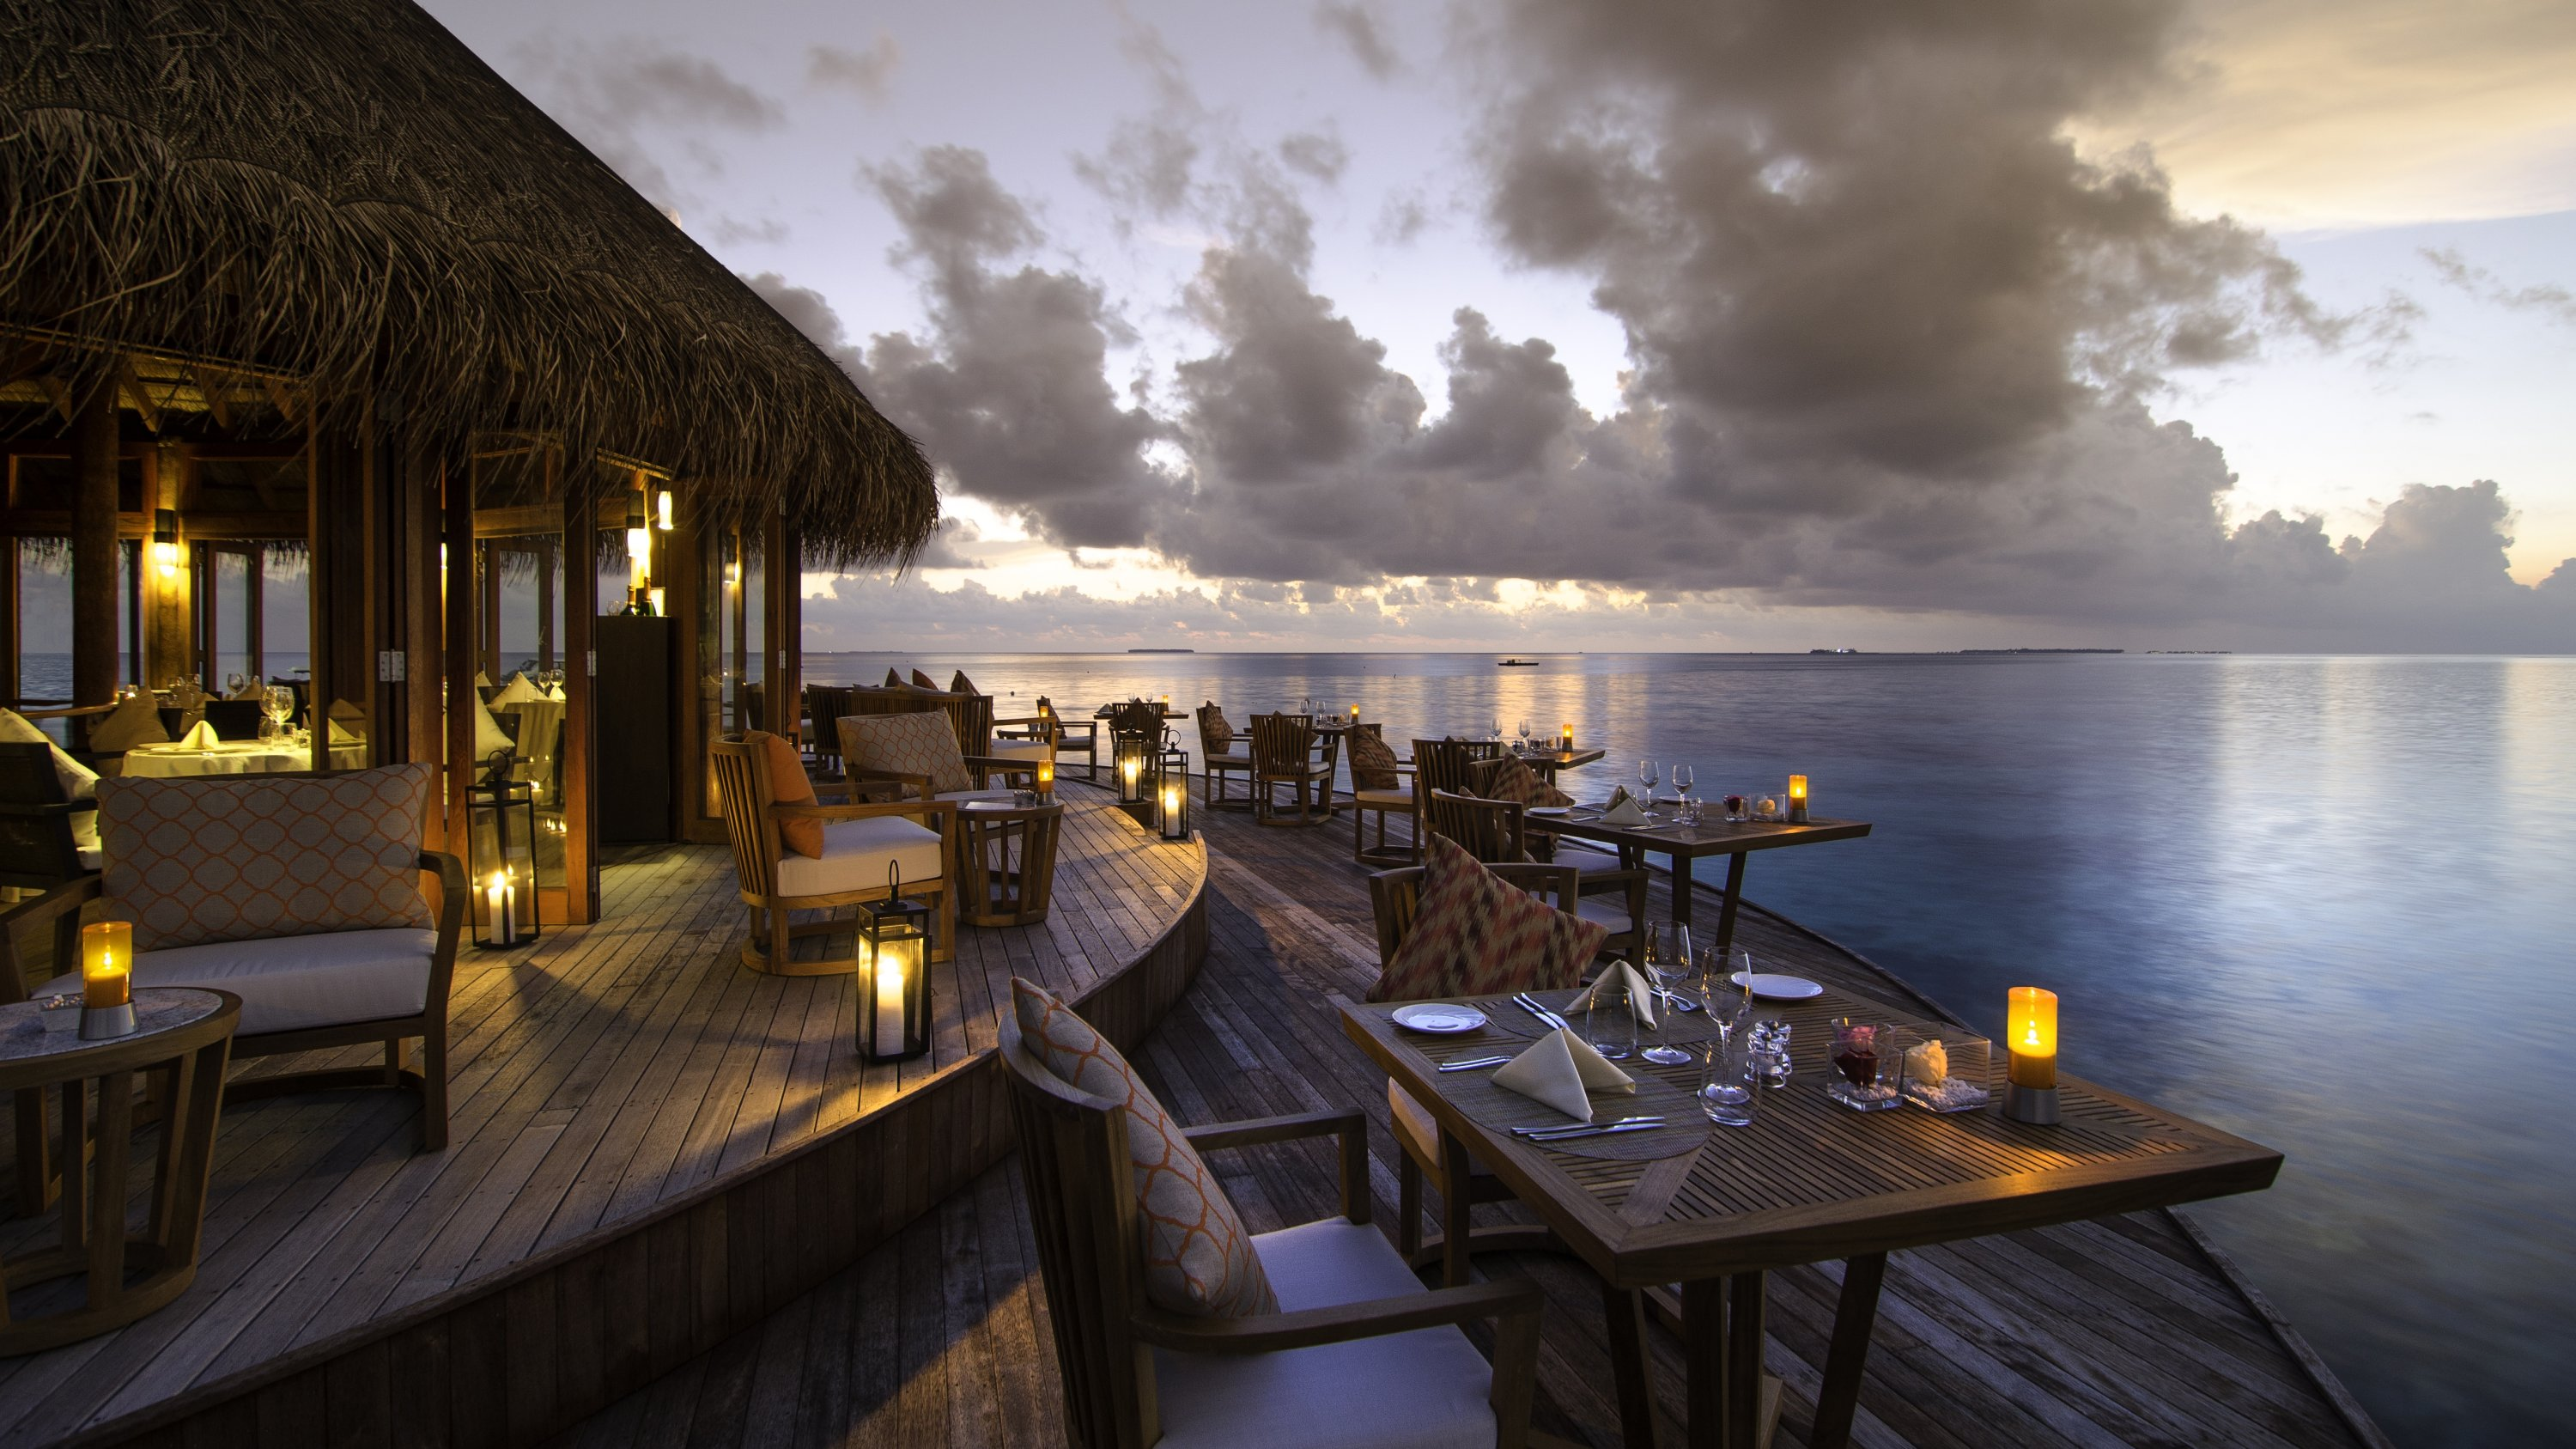 Don't be surprised to see stingrays or schools of fish lazily swimming as you enjoy culinary delights with an incredible view at Mirihi's Muraka restaurant. (Photo courtesy of Mirihi Maldives)